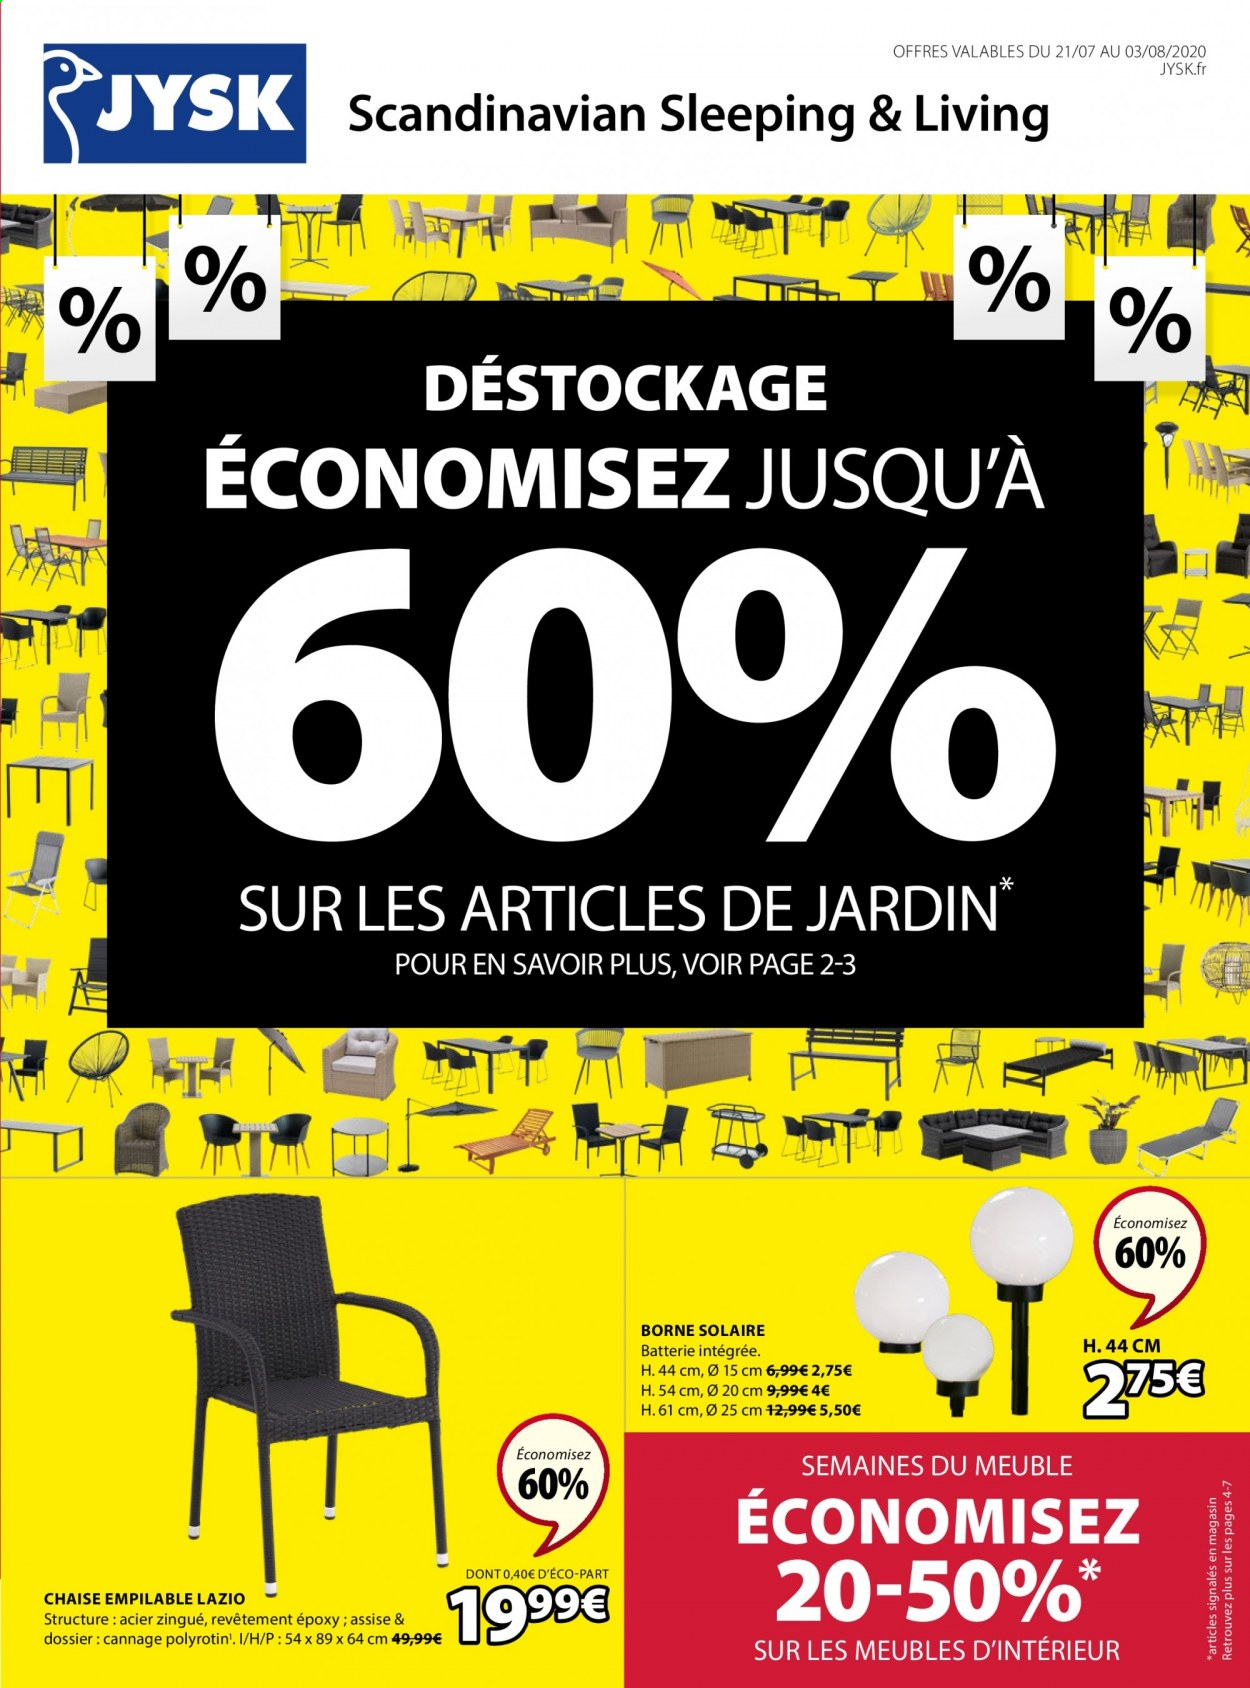 Catalogue JYSK - 21.07.2020 - 03.08.2020 - Produits soldés - assise, batterie, chaise, meuble. Page 1.